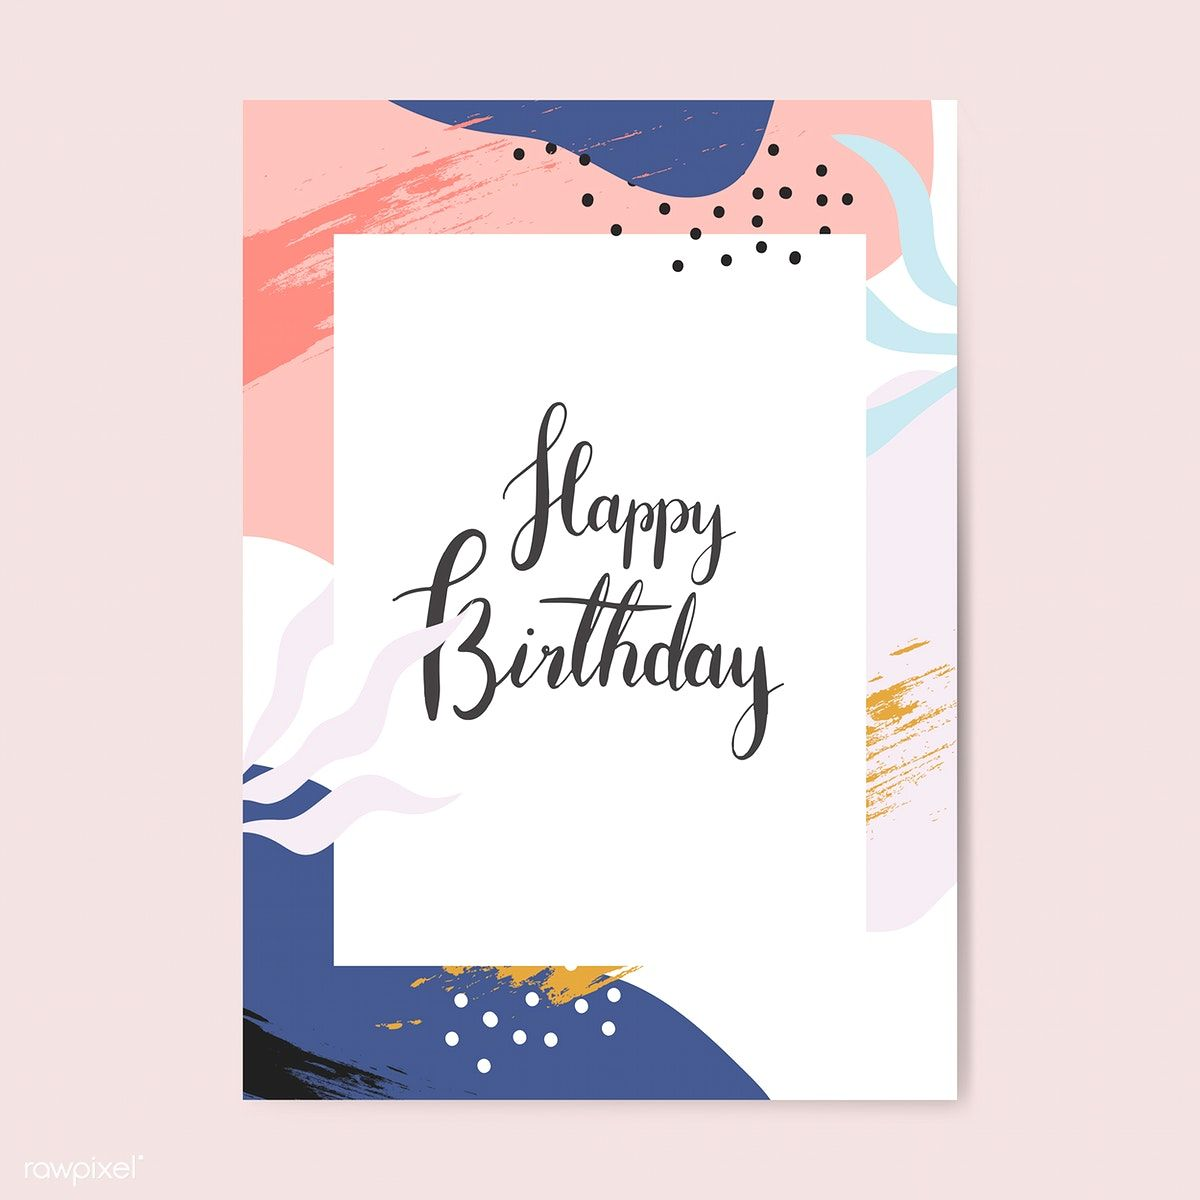 Colorful Memphis Design Happy Birthday Card Vector Free Image By Rawpixel Com Aum Happy Birthday Card Design Birthday Card Design Happy Birthday Cards